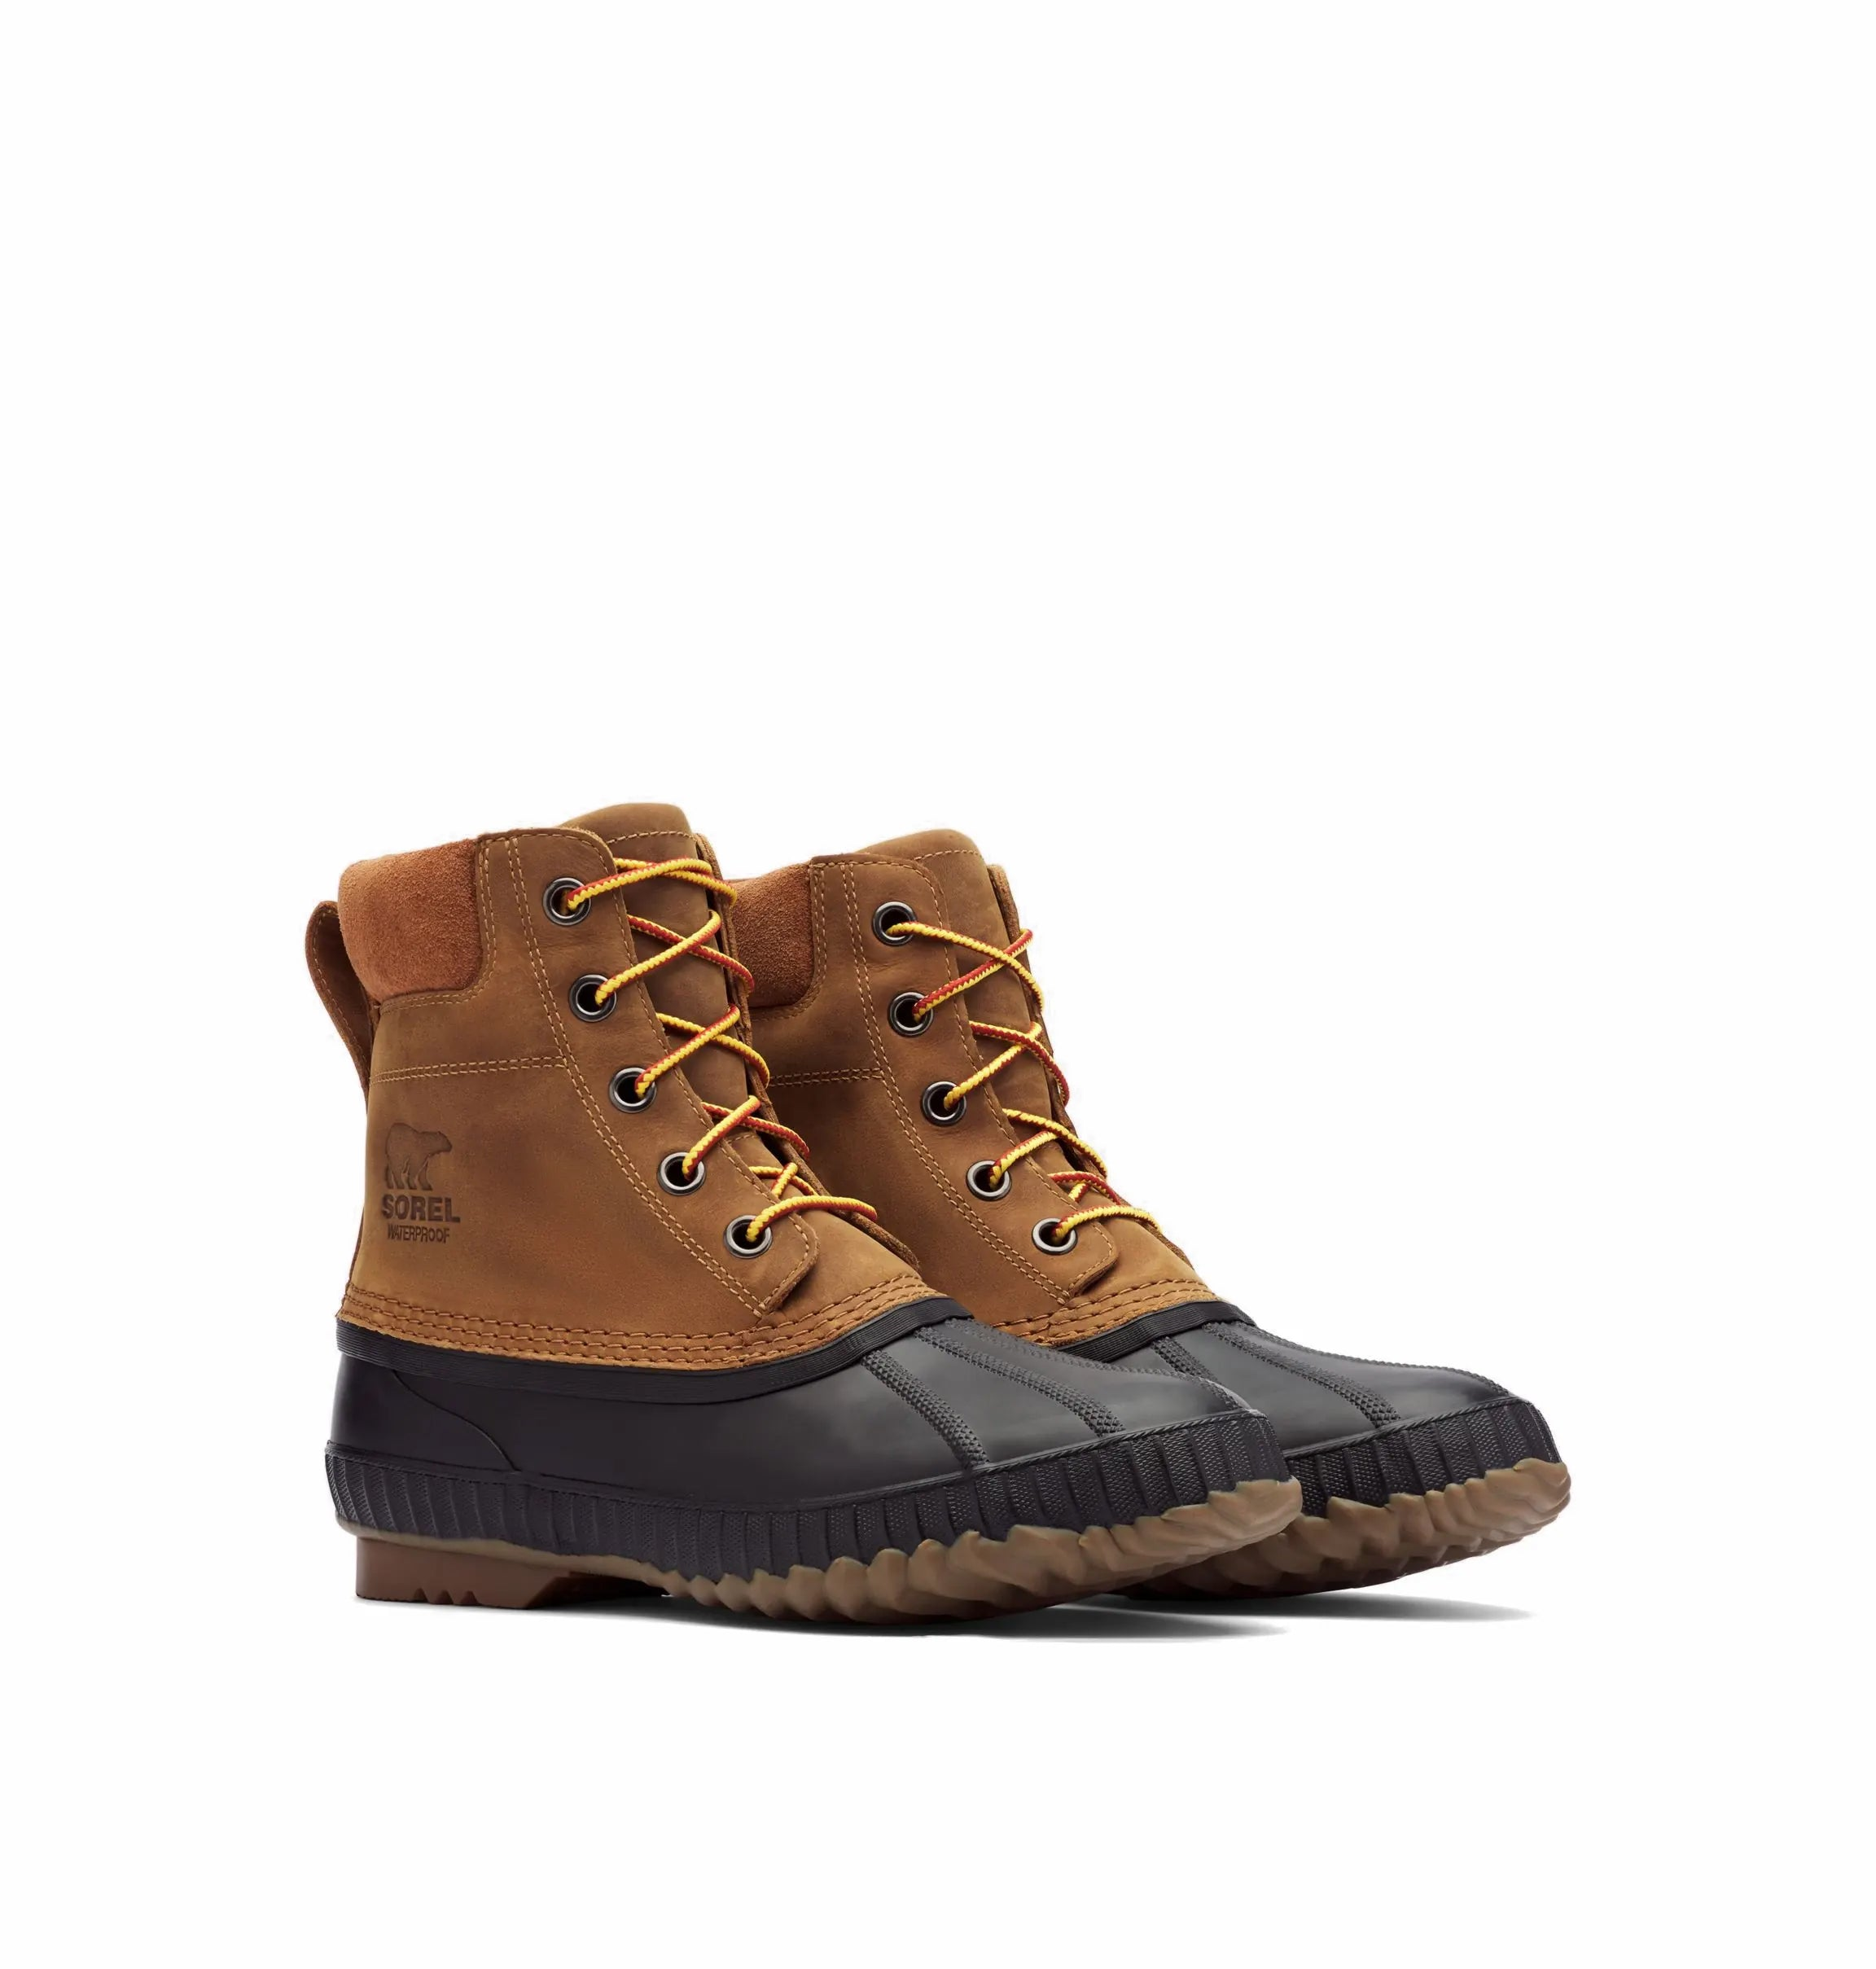 SOREL-CHEYANNE II LACE DUCK BOOT MEN